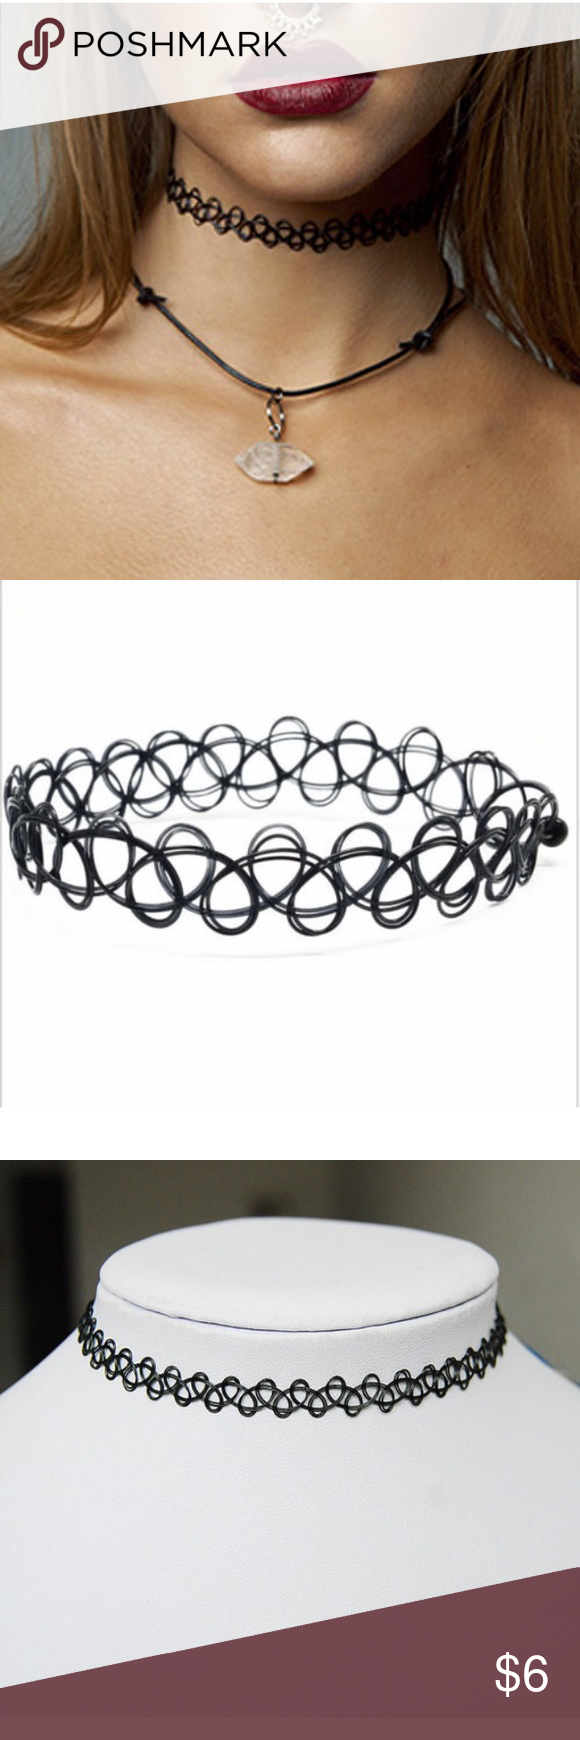 Tattoo Choker - Stretch Necklace Black Retro 90s Stretch Necklace New Black Retro Henna Vintage Elastic Boho 90s   - Great way to add flair to any outfit  - Can be worn on neck, wrists and ankles  - Stretches to fit anyone's neck  Package Included 1 x Stretch Tattoo Choker Necklace Jewelry Necklaces